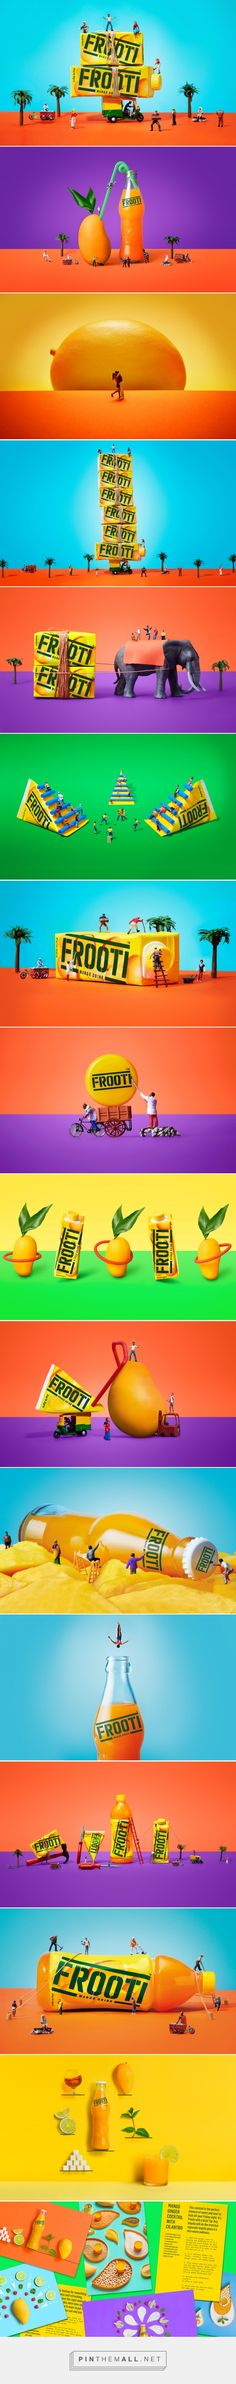 Frooti  via Sagmeister & Walsh curated by Packaging Diva PD. Start your week with colorful a packaging smile : )